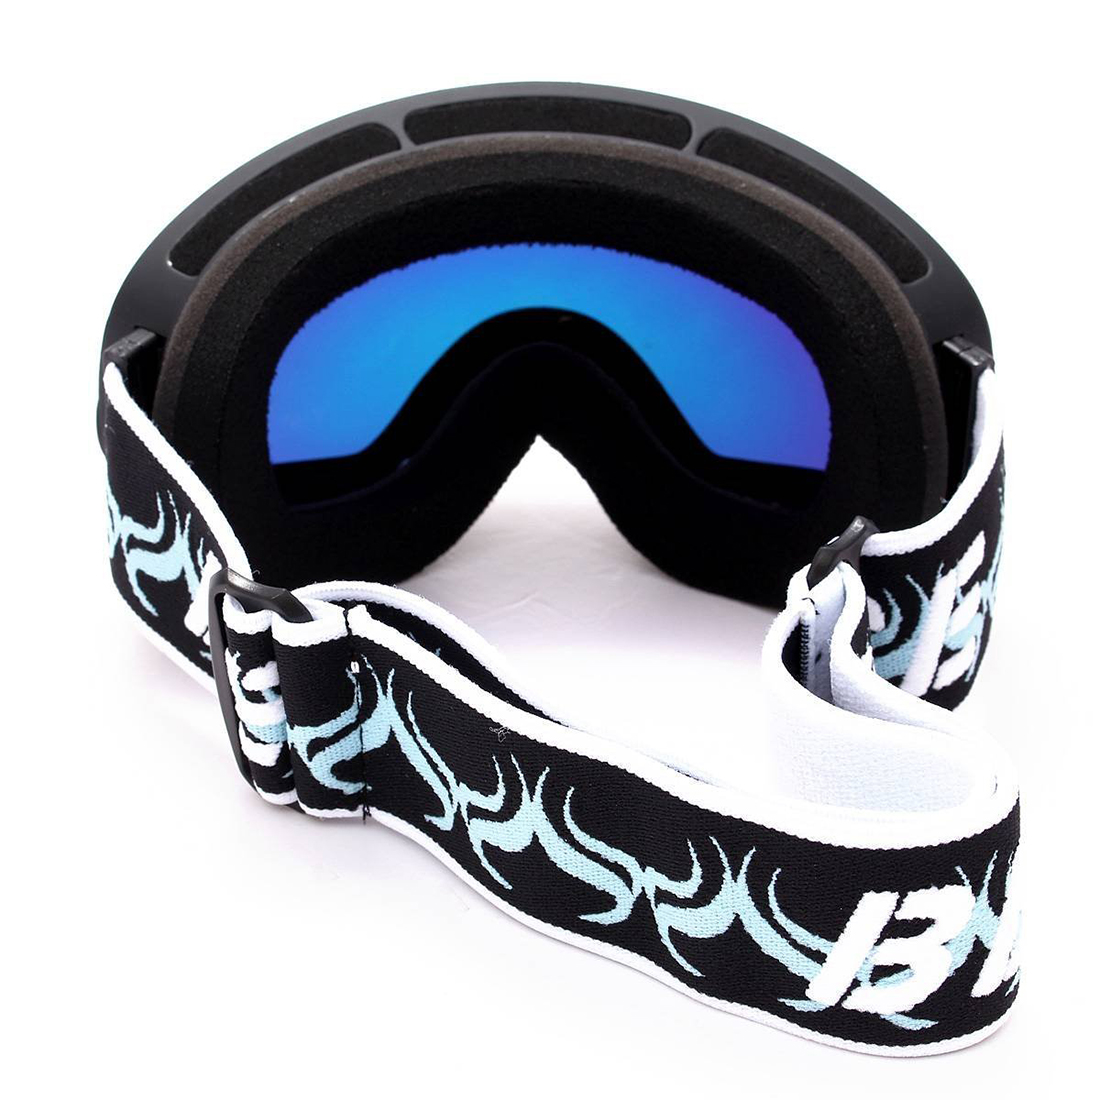 Ski goggles double layer anti-fog eyes black frame